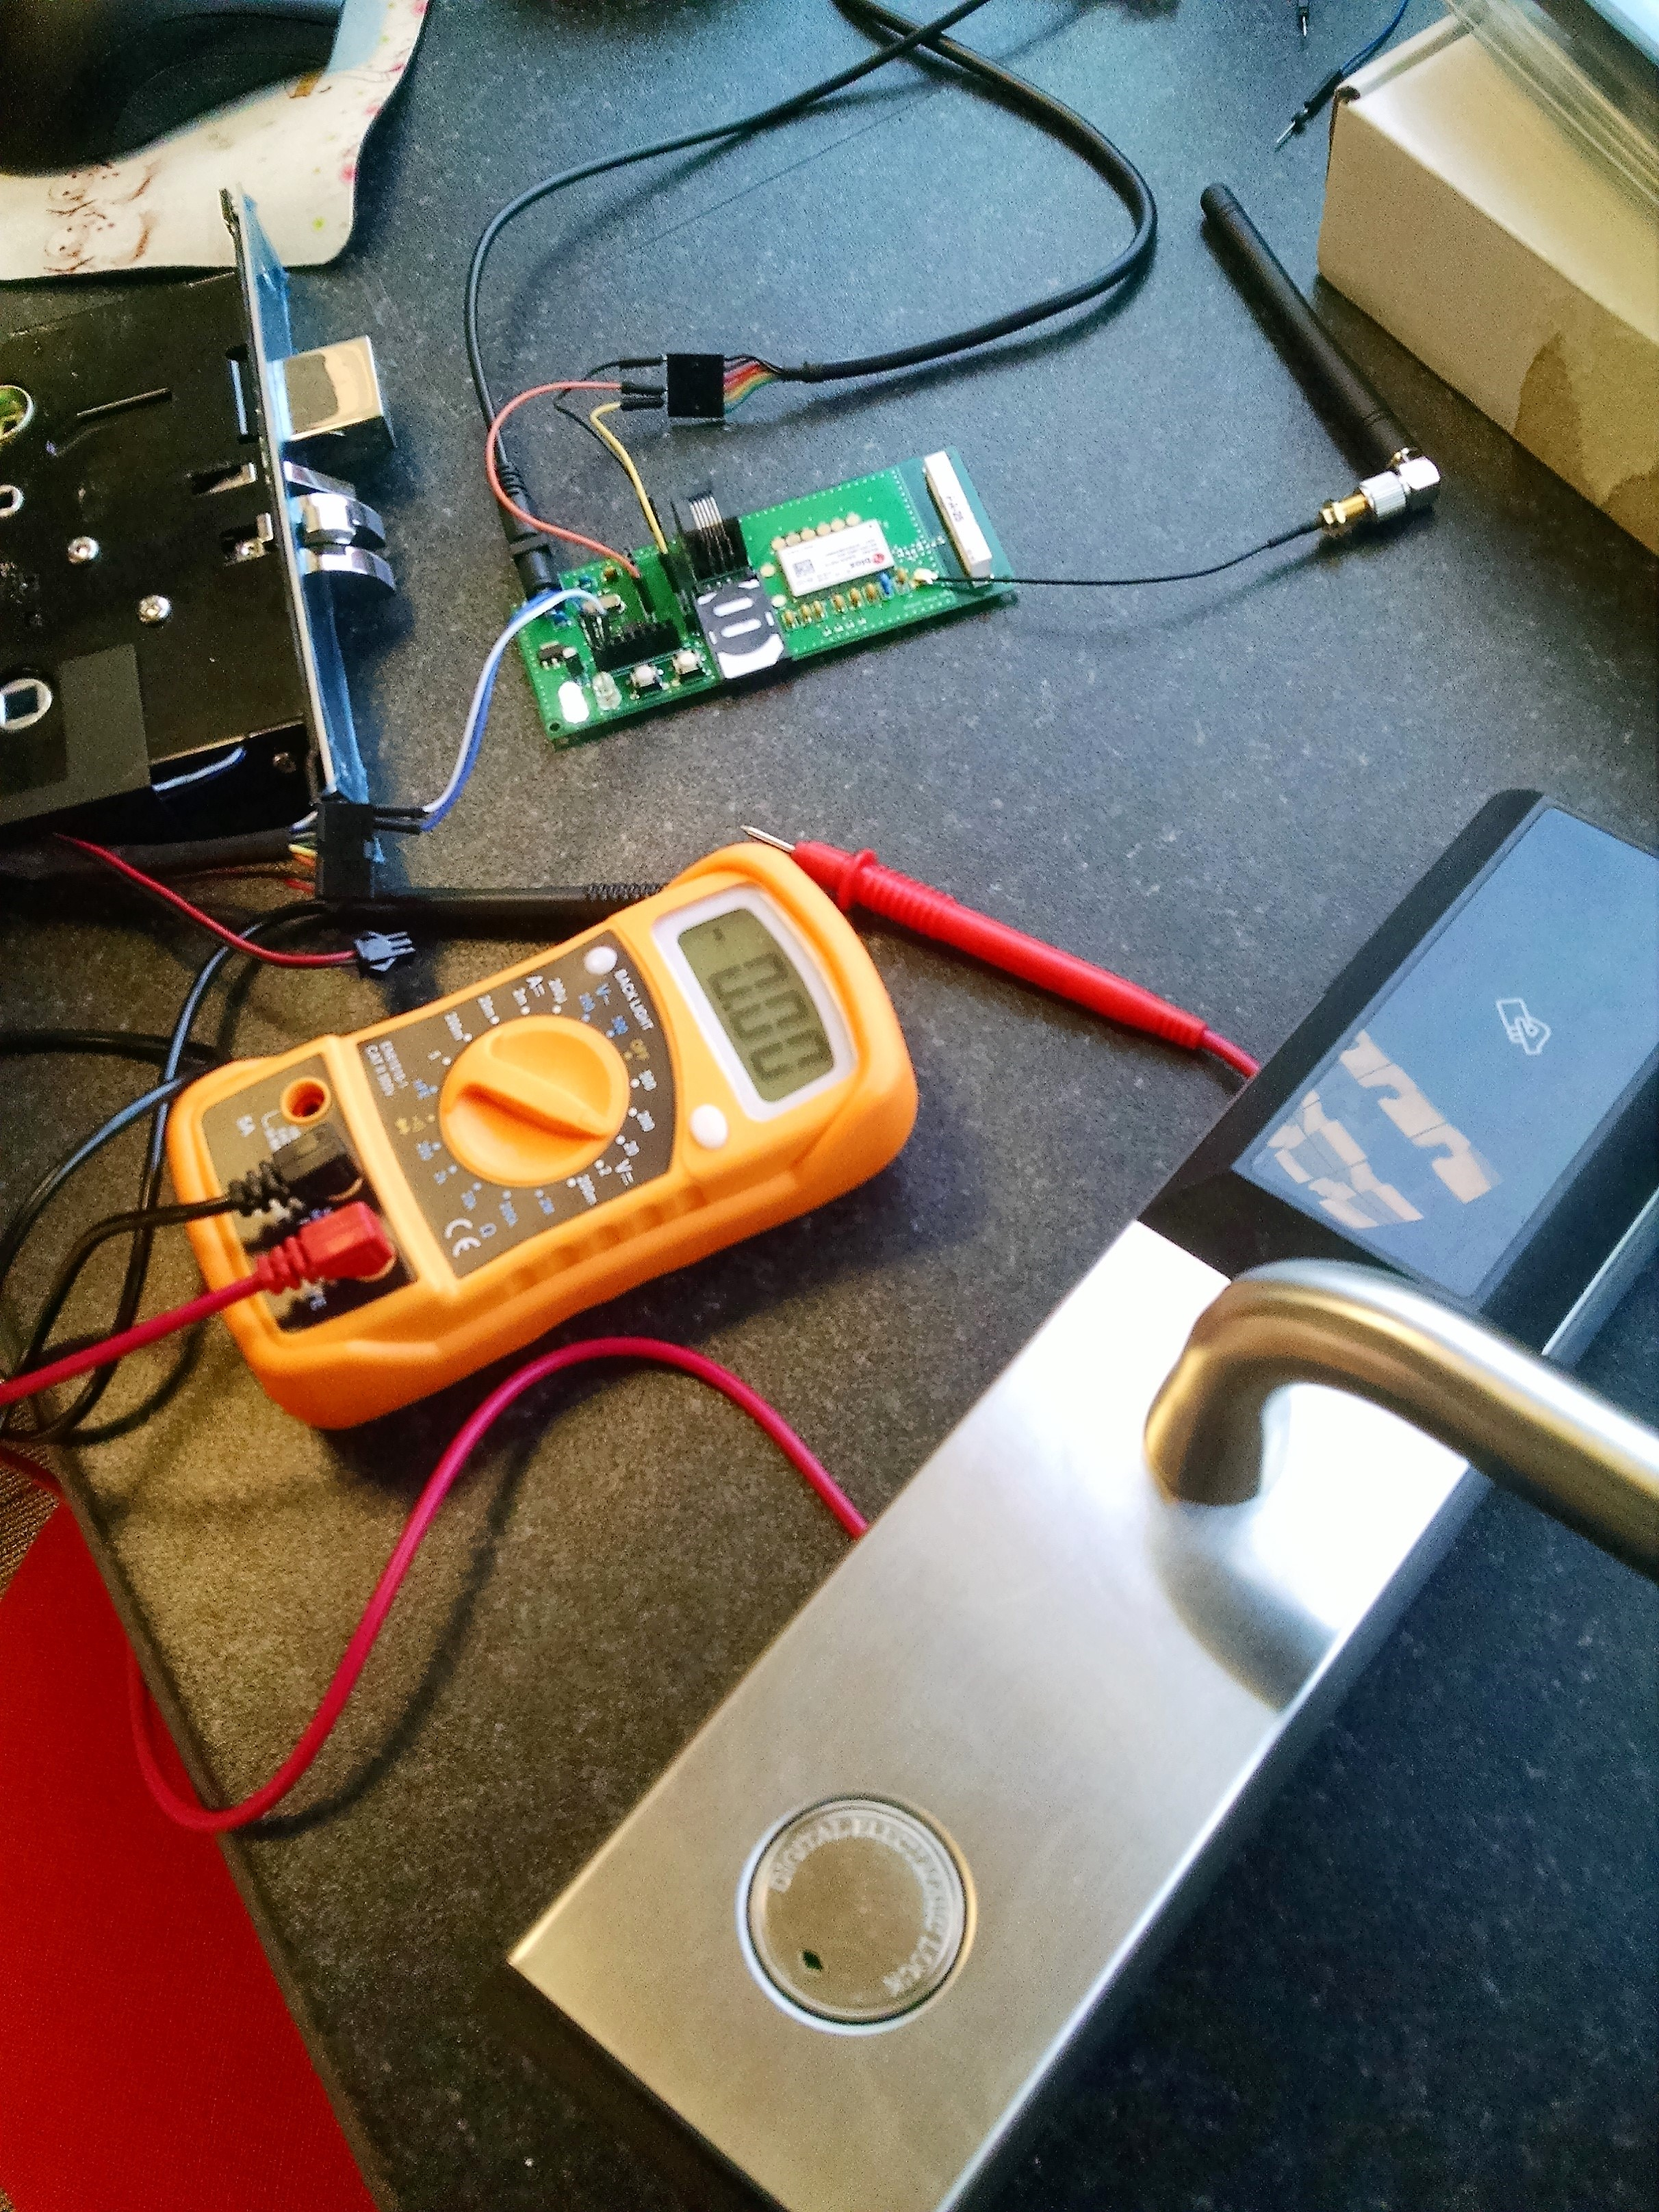 NB IoT Smart Lock under development